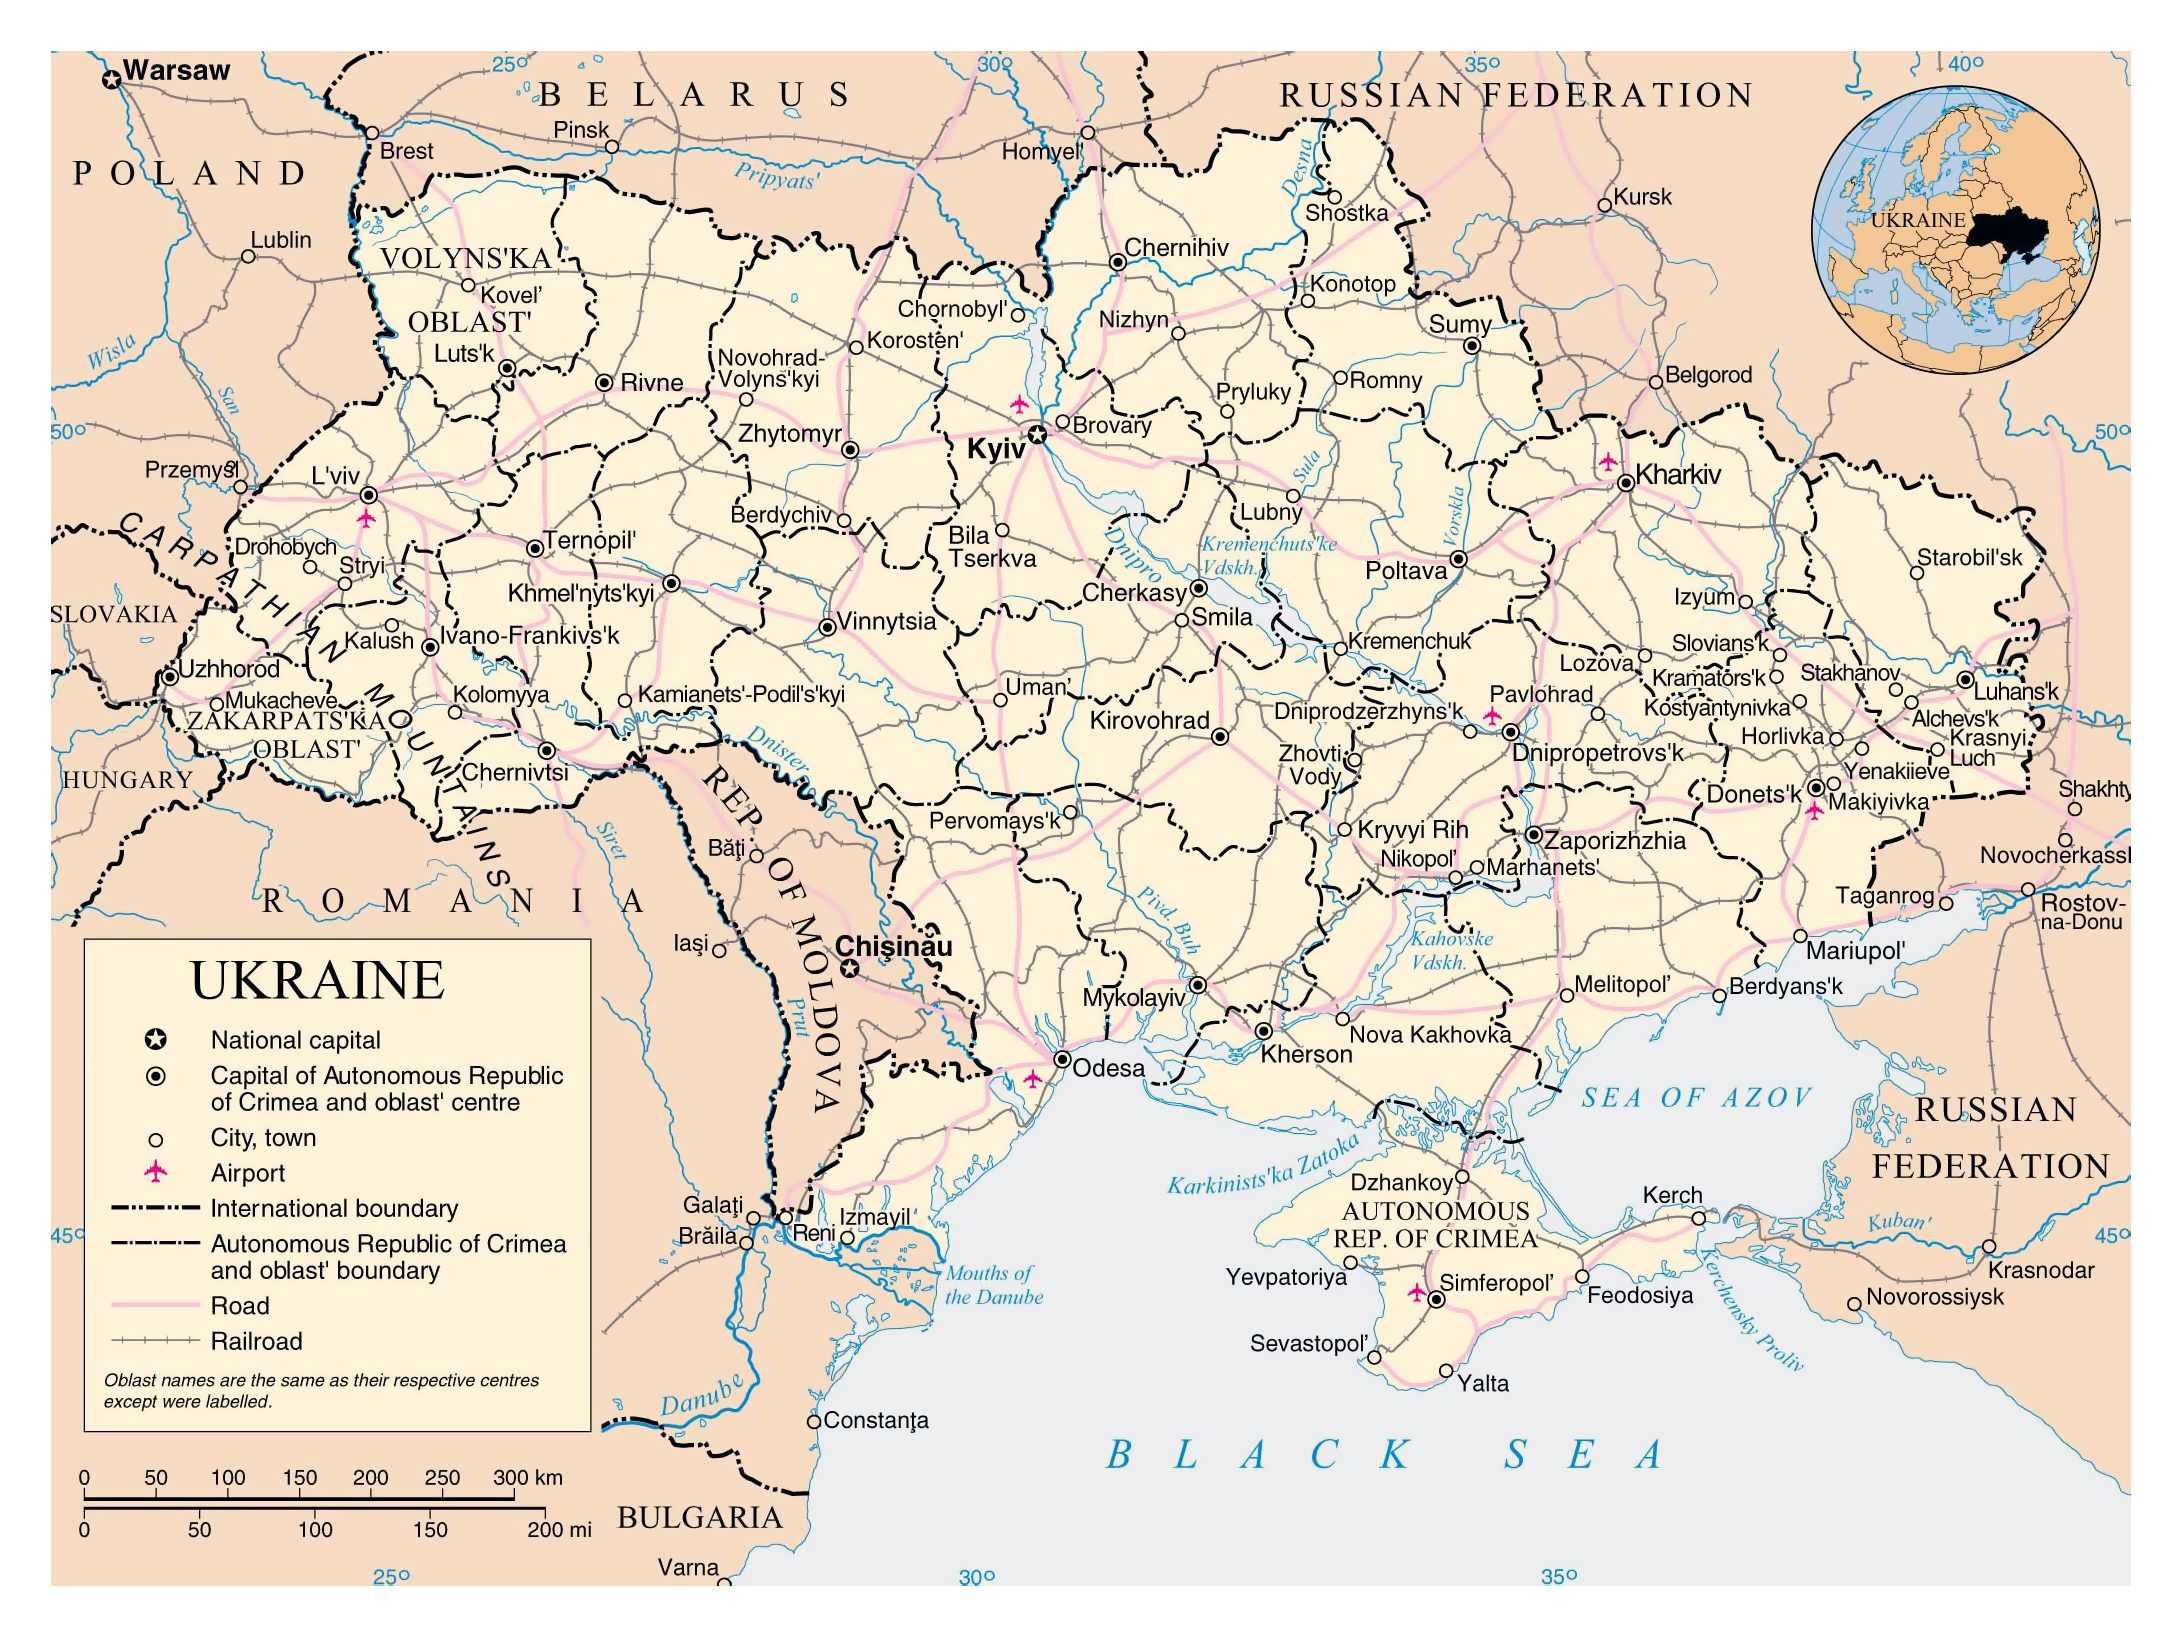 Ukraine On Map Of Europe.Large Political And Administrative Map Of Ukraine With Roads